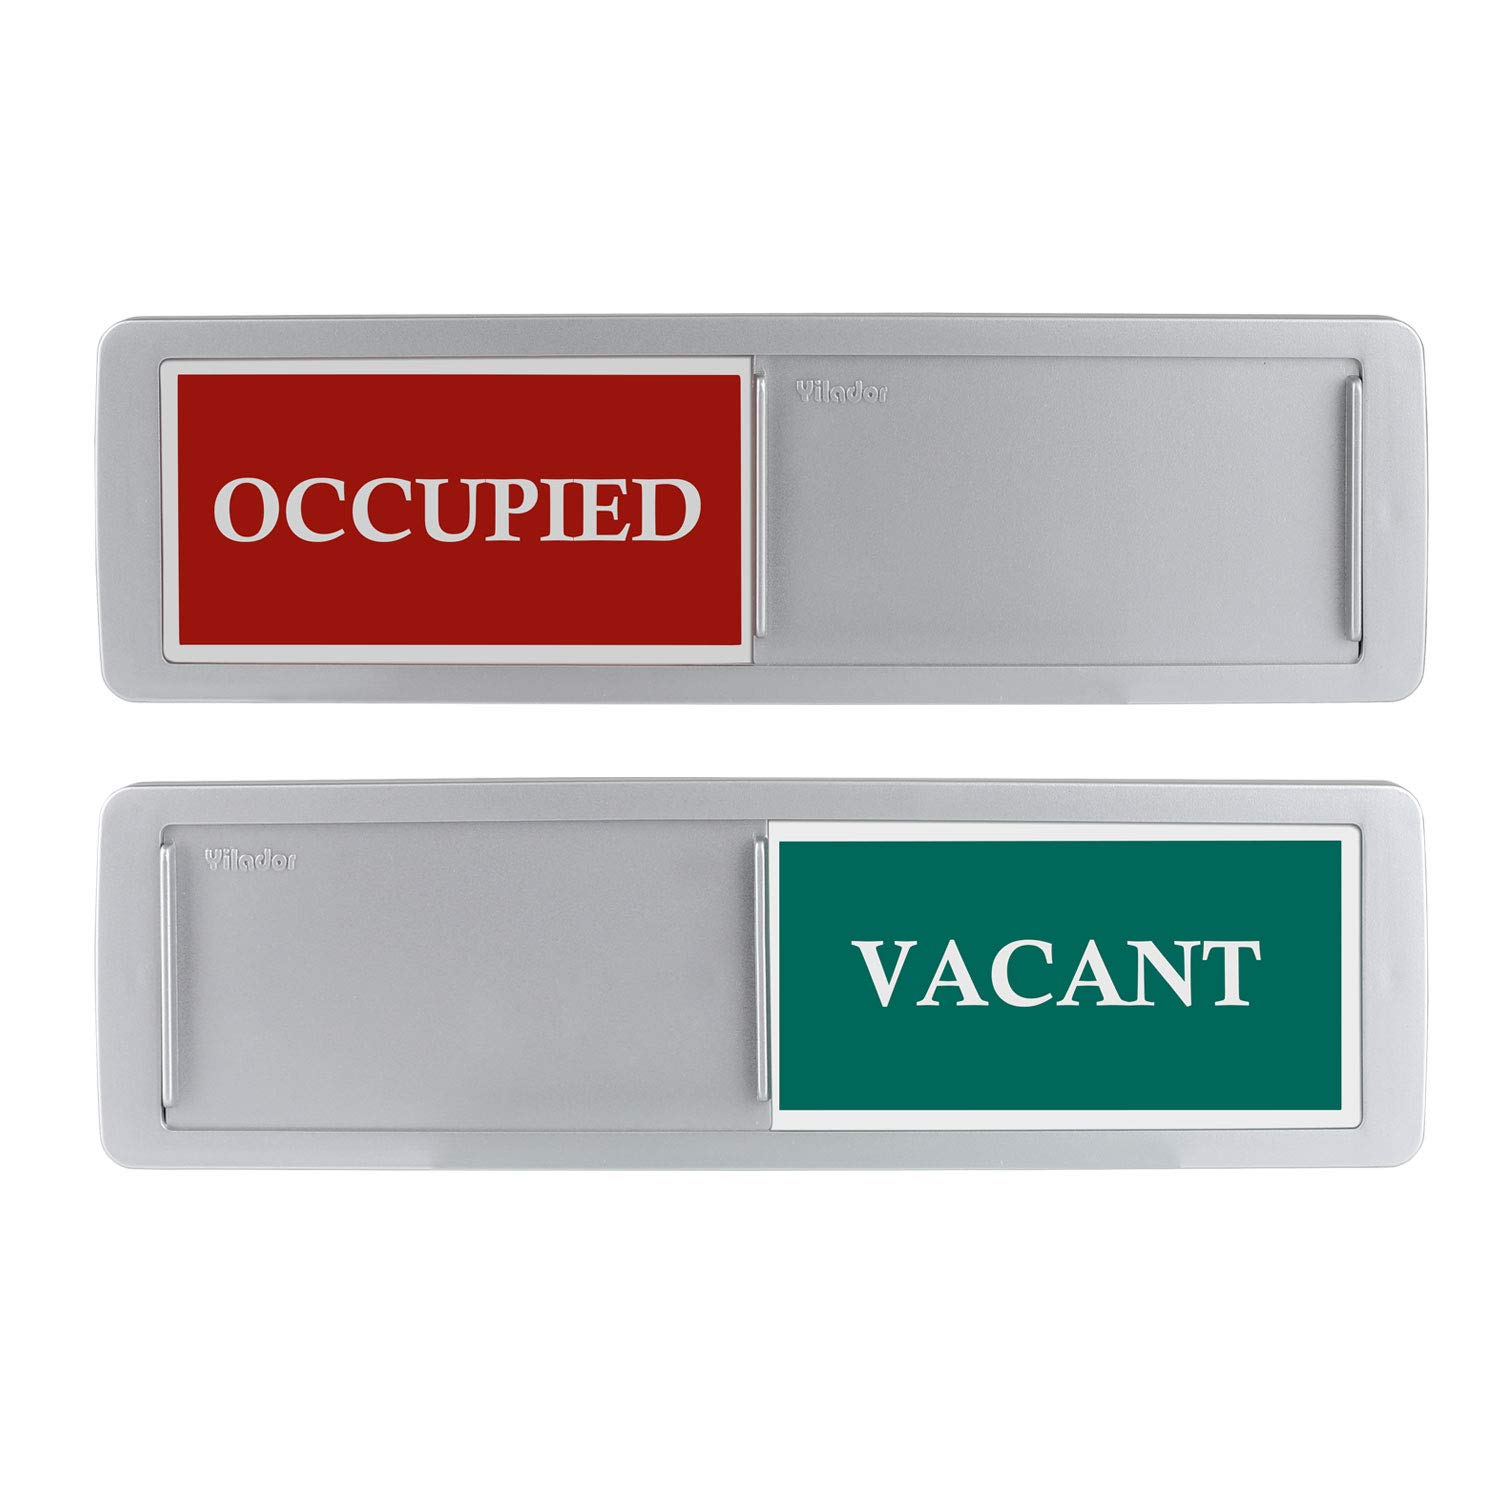 Privacy sign premium vacant occupied sign for home office restroom conference hotles hospital slider door indicator tells whether room vacant or occupied